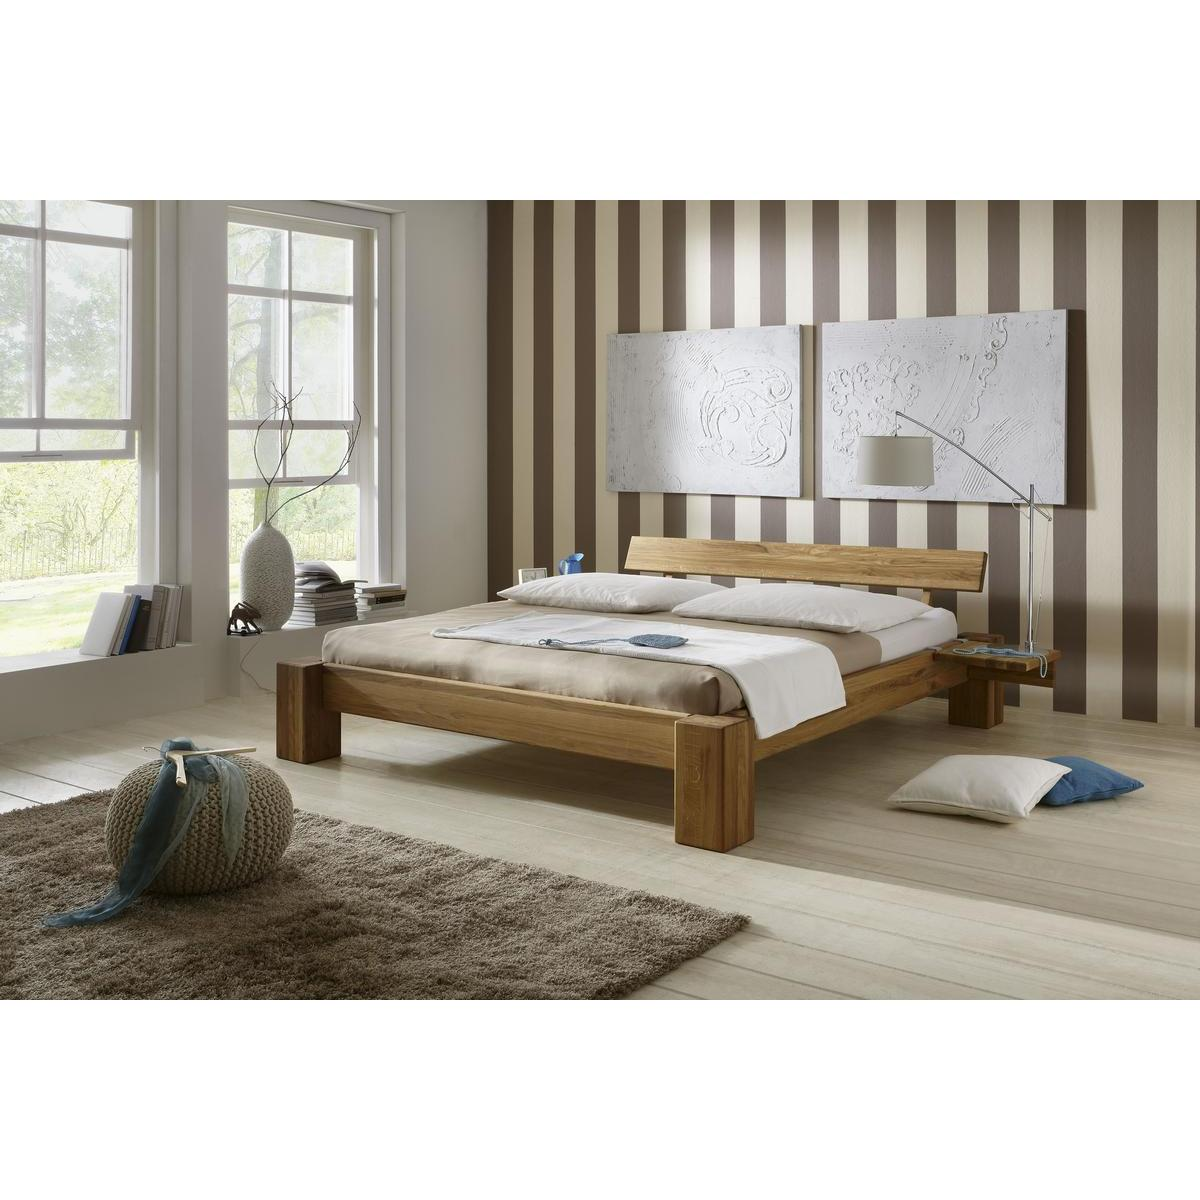 massivholz bett 120x200 xl easy sleep eiche massiv ge lt 9512 95 3. Black Bedroom Furniture Sets. Home Design Ideas